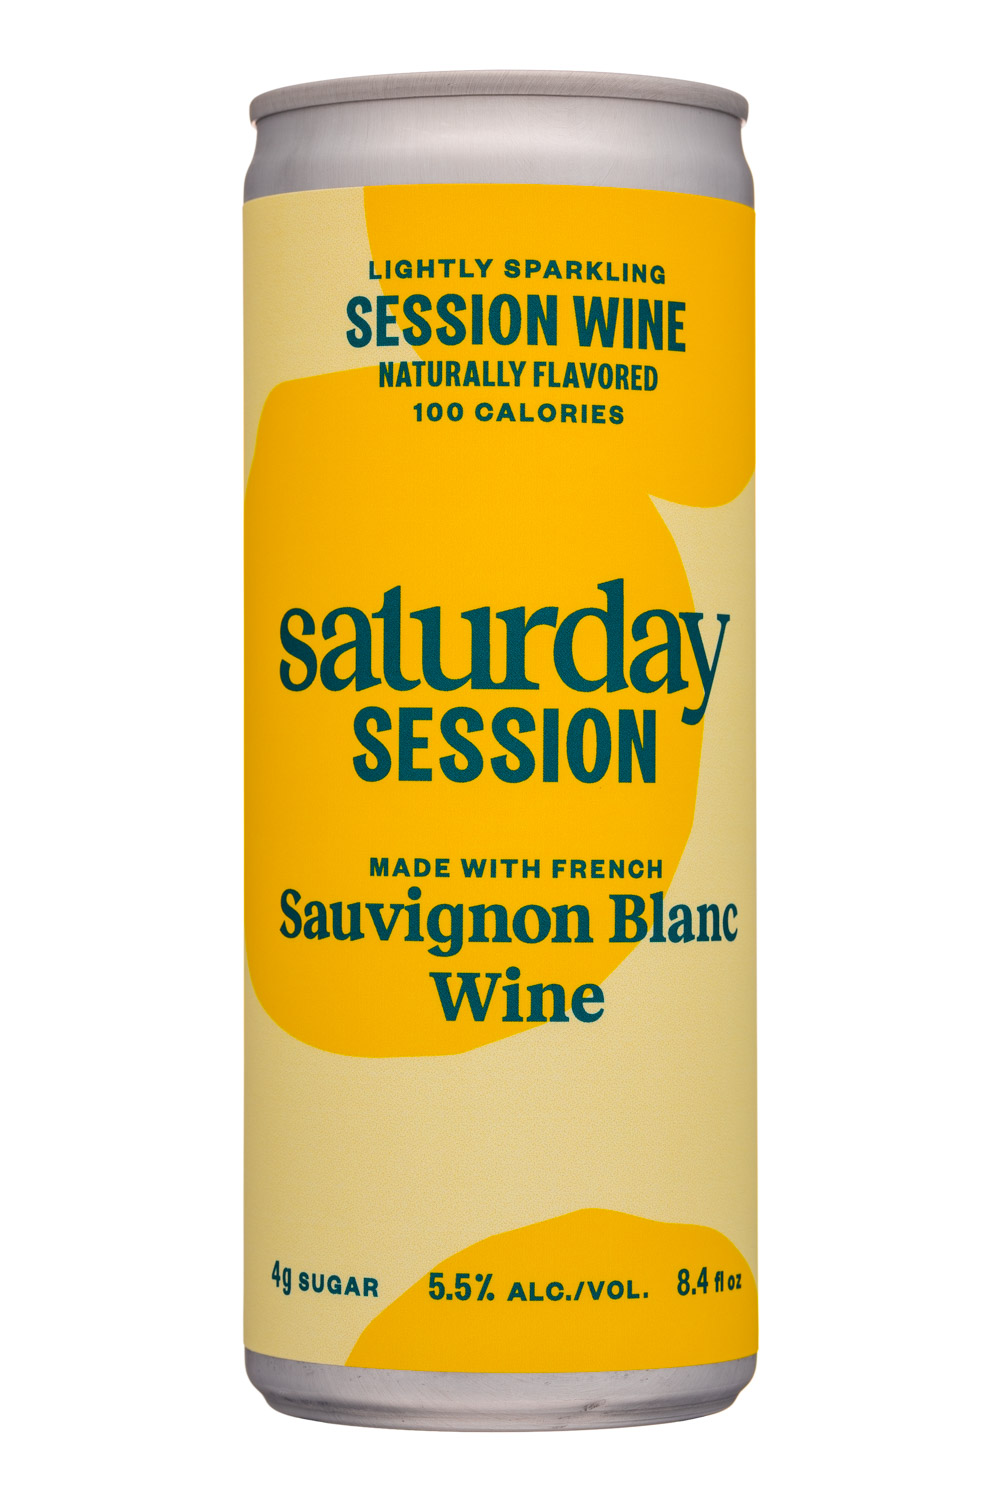 Session Wine - Sauvignon Blanc Wine